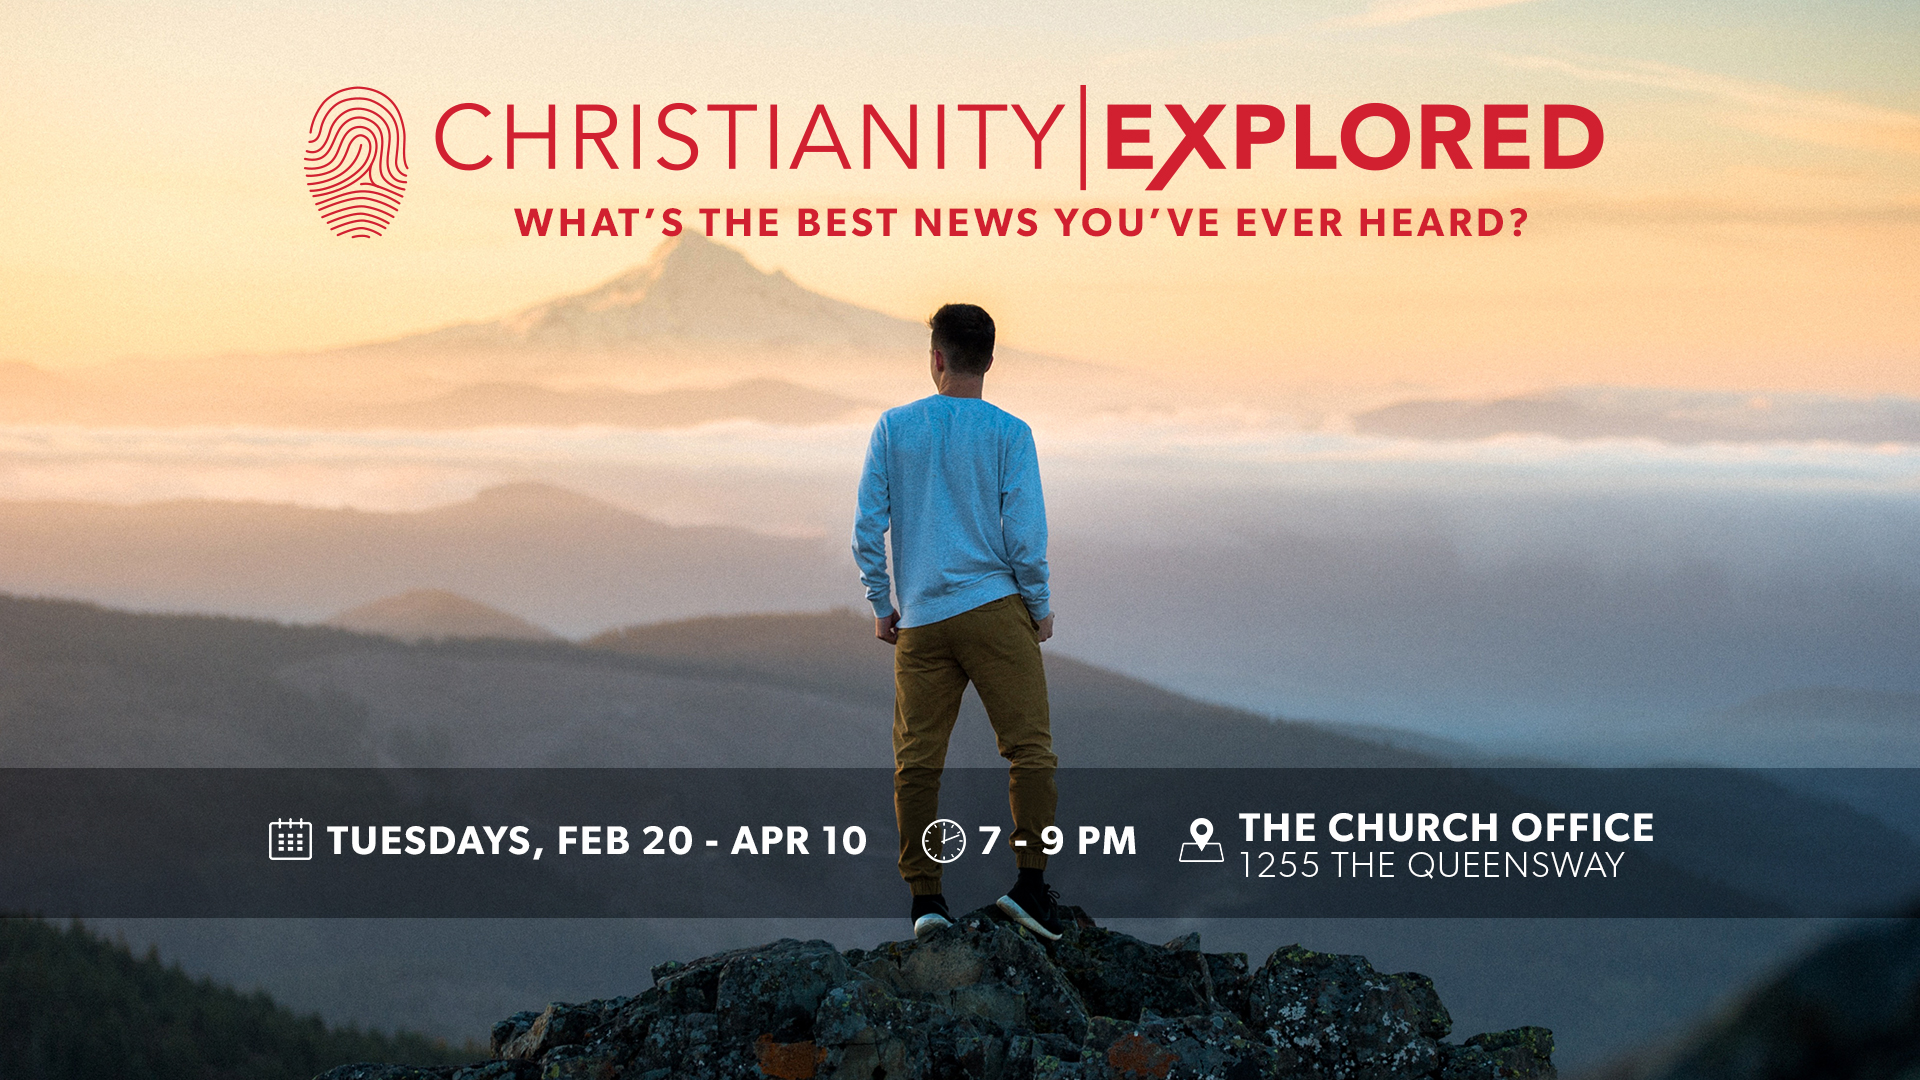 Christianity explored   announcement graphic  1